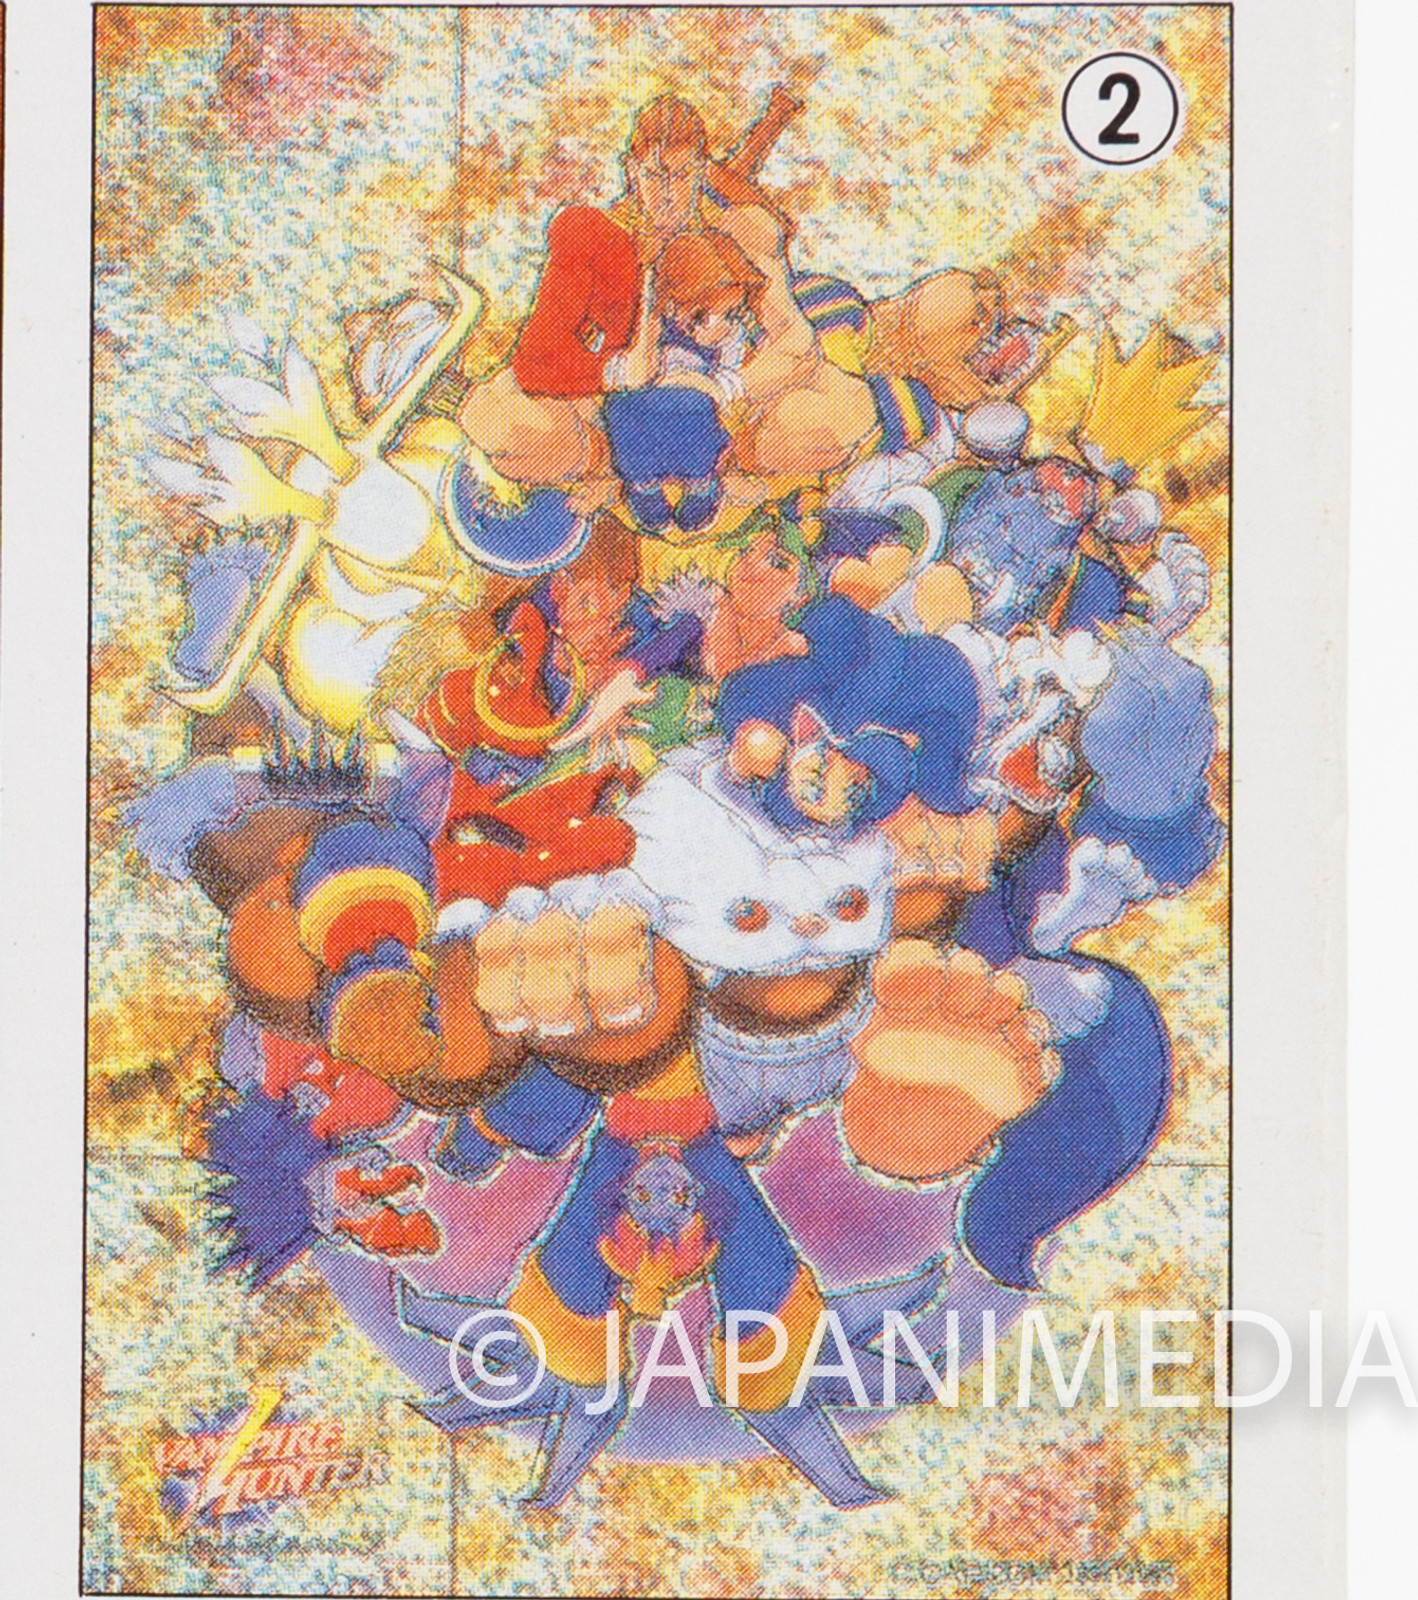 Darkstalkers (Vampire Hunter) Toy Jigsaw Puzzle 54 Pieces #2 JAPAN Capcom